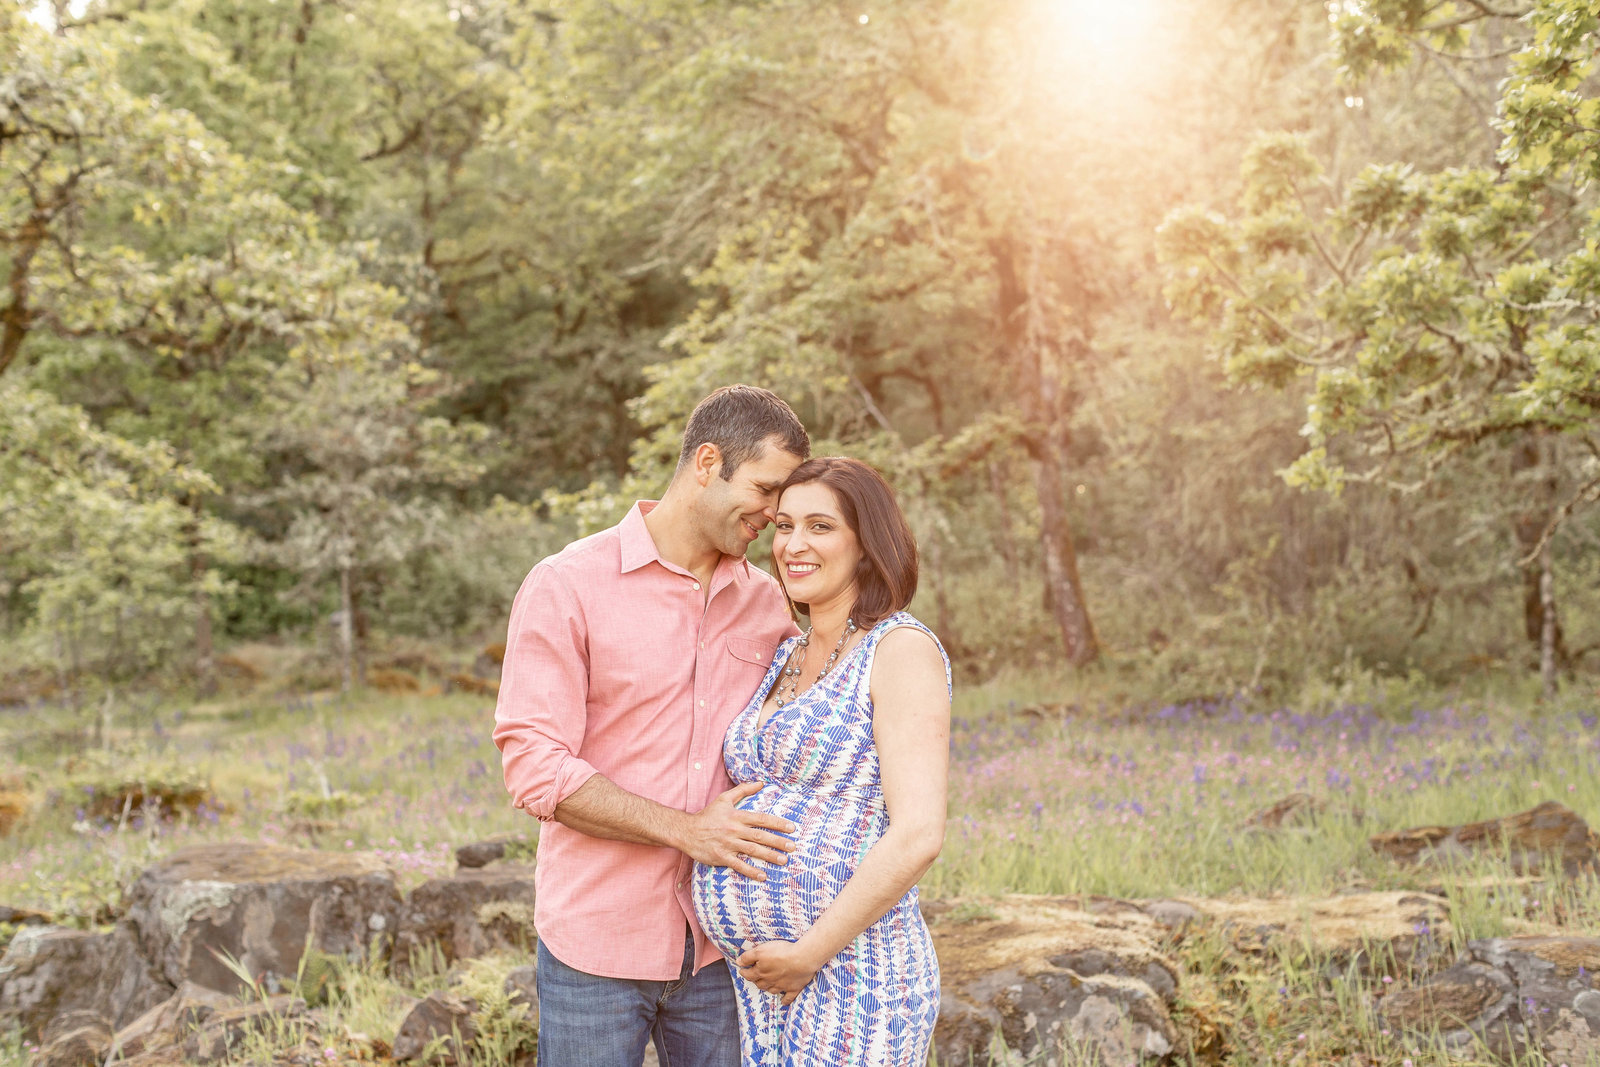 Purington_Maternity-6